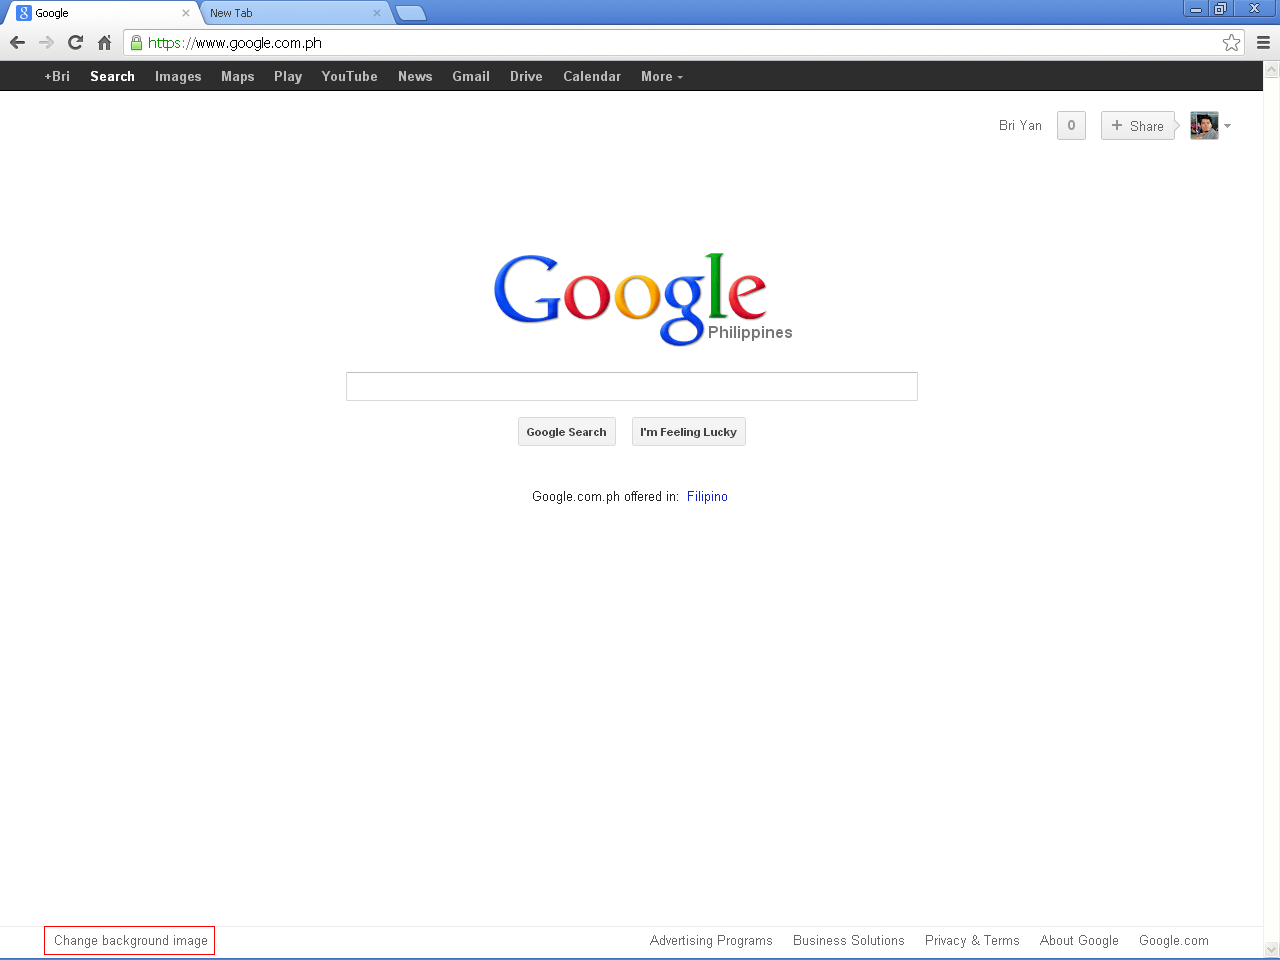 corner of your GOogle homepage screen click Change background image 1280x960